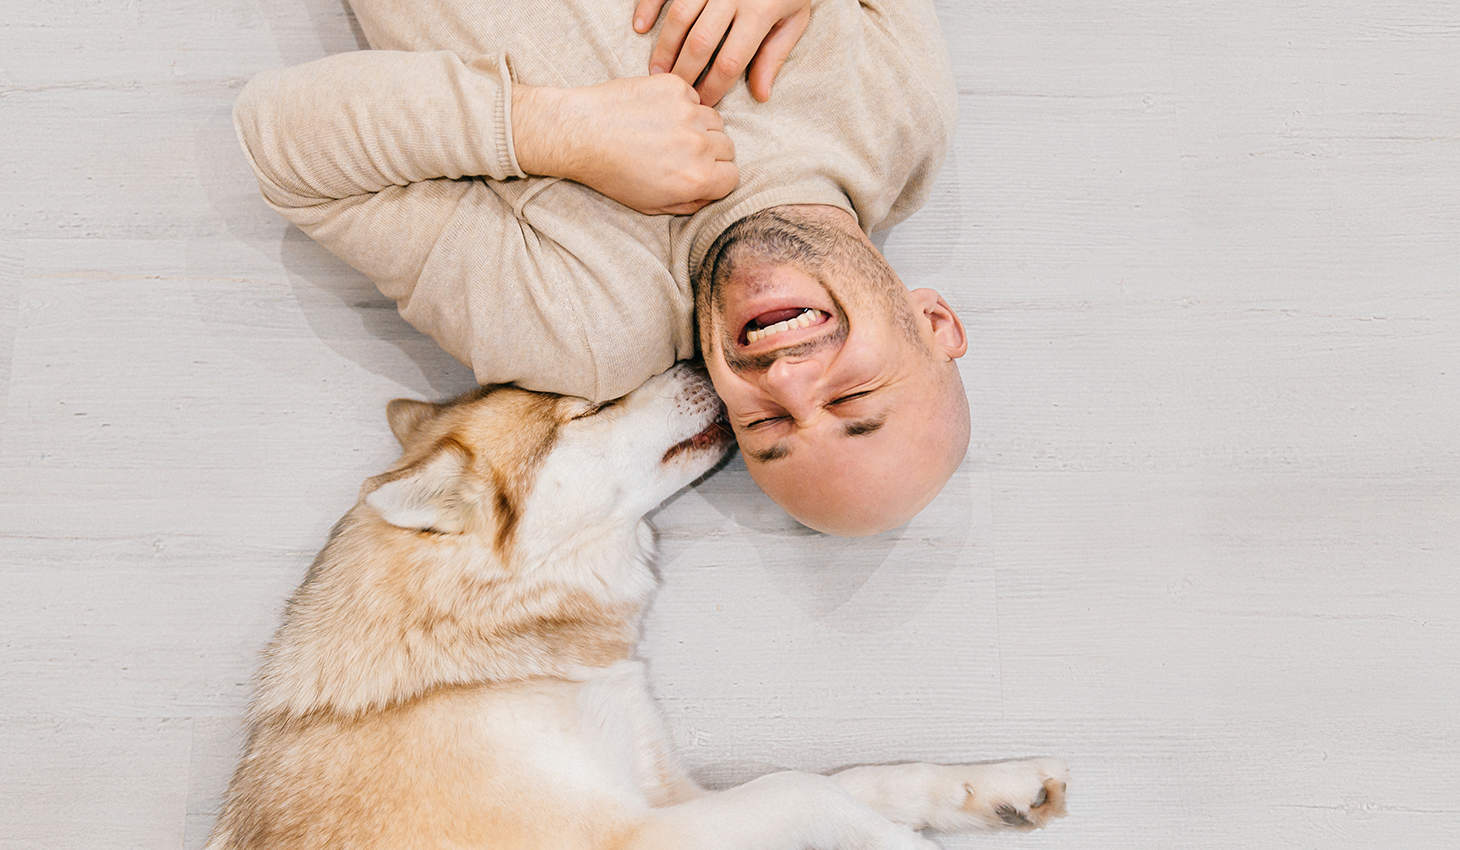 dog licking a mans ears while the man is laughing